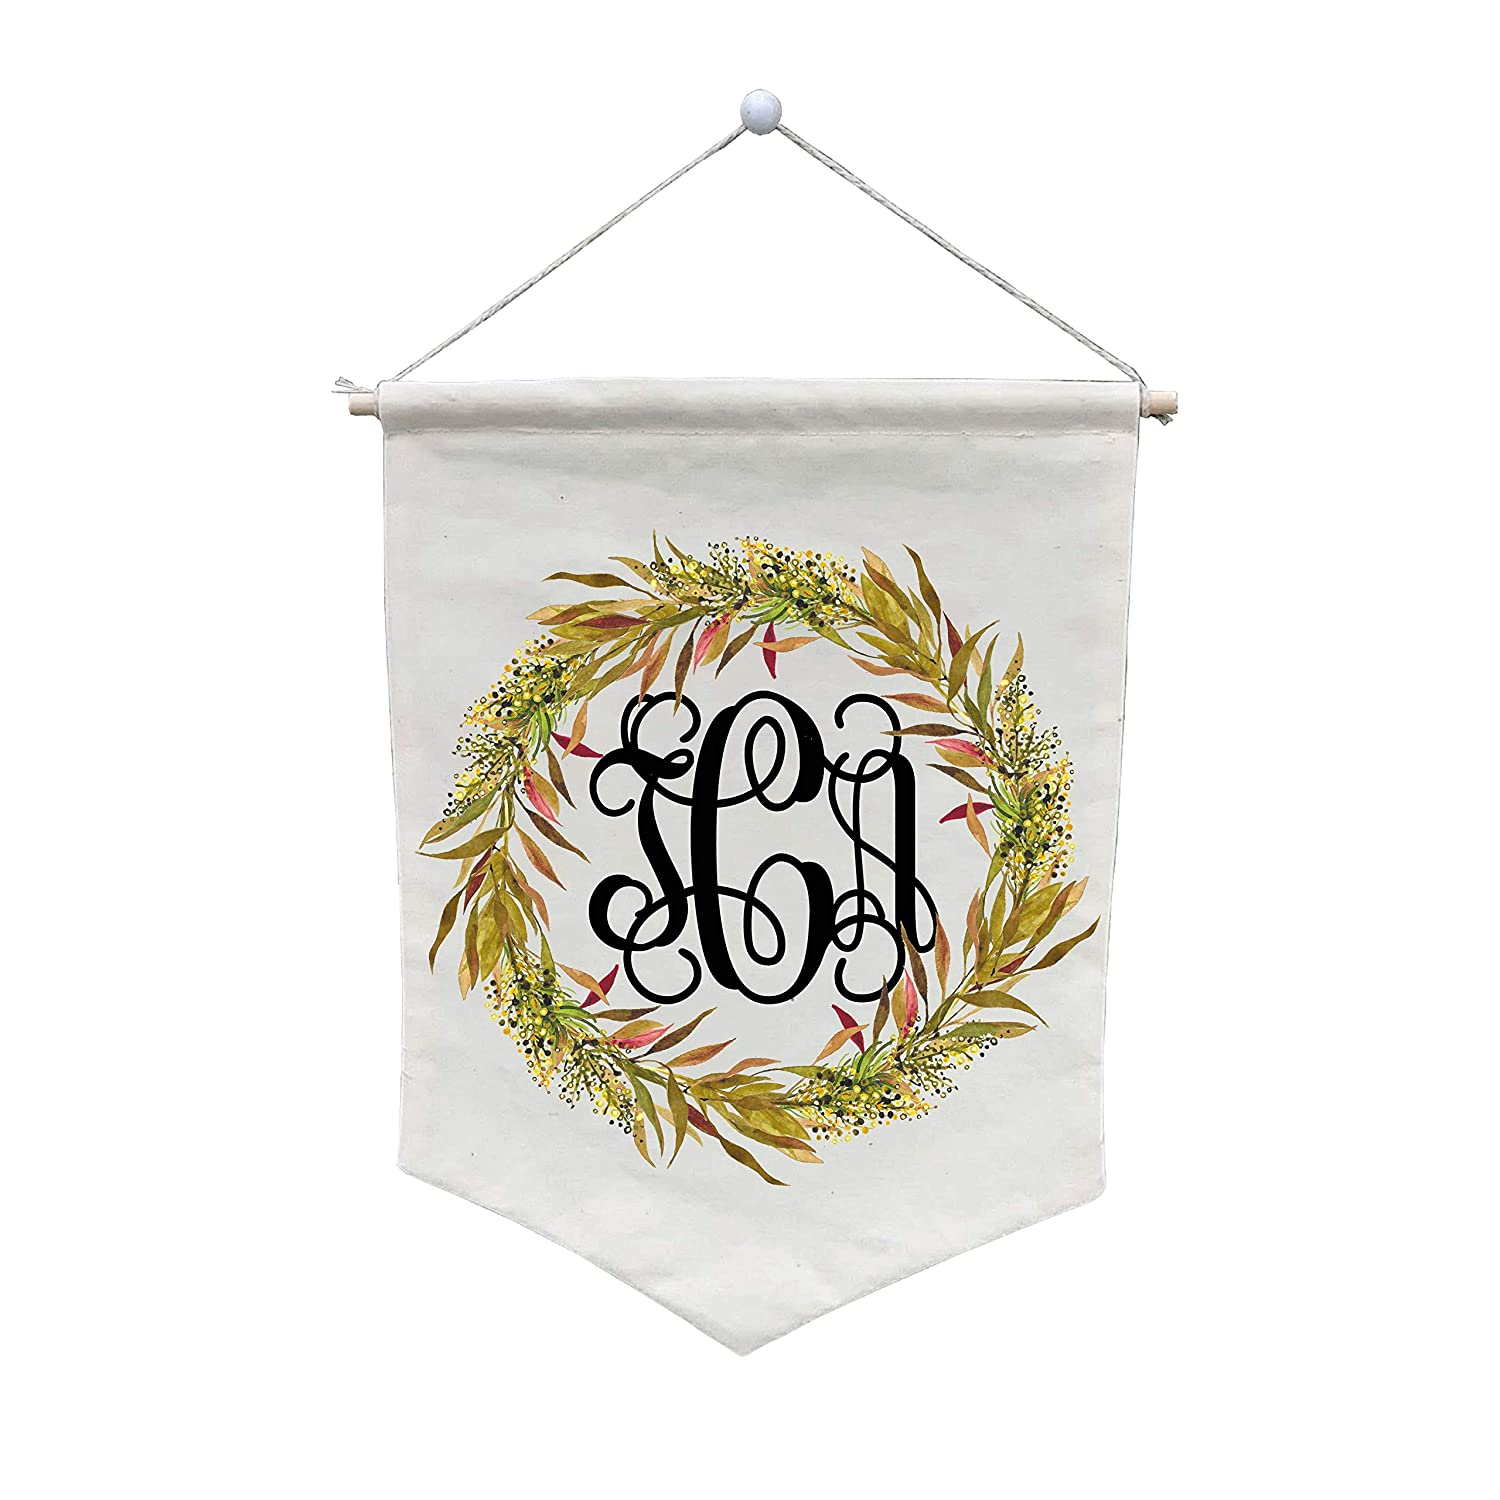 Floral Wreath Bouquet Monogram Wall - WB237 Credence Customize Banner Brand new